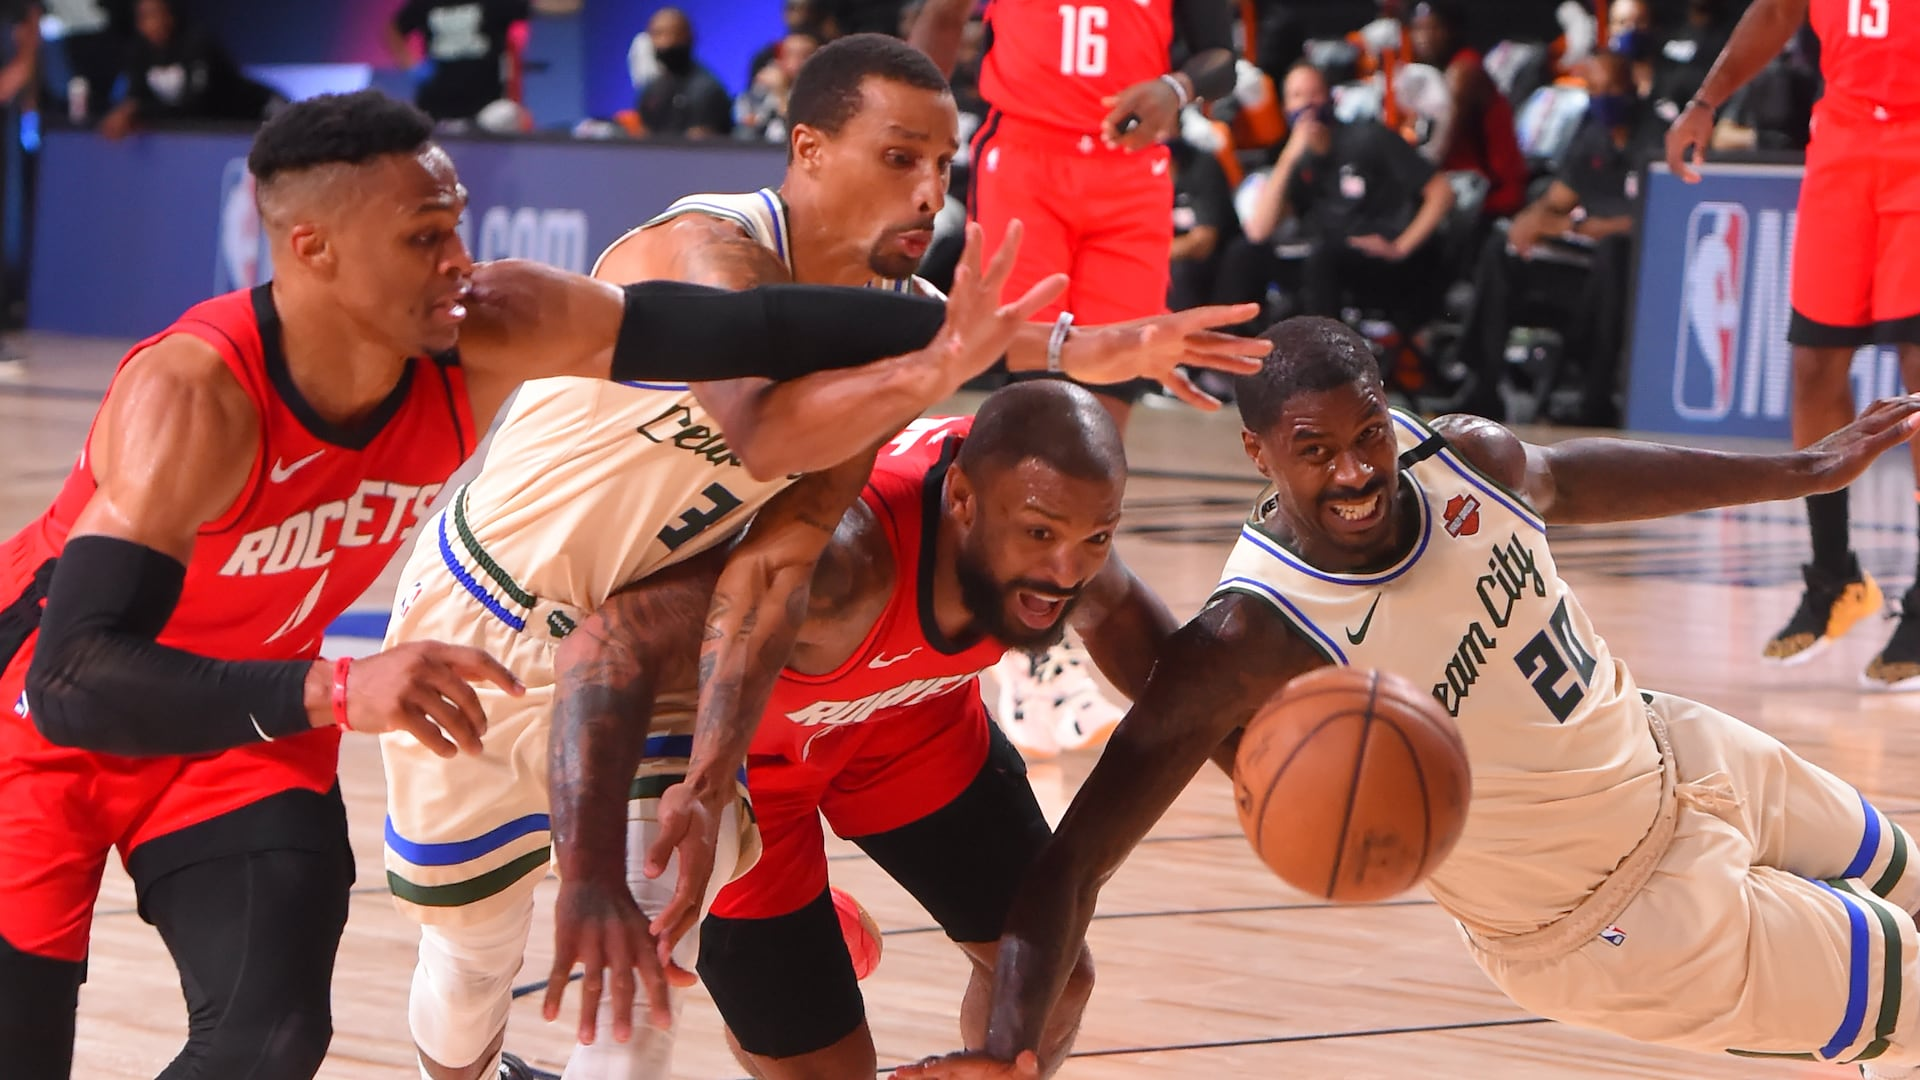 Bucks and Rockets' respective strengths, flaws on full display in dramatic meeting